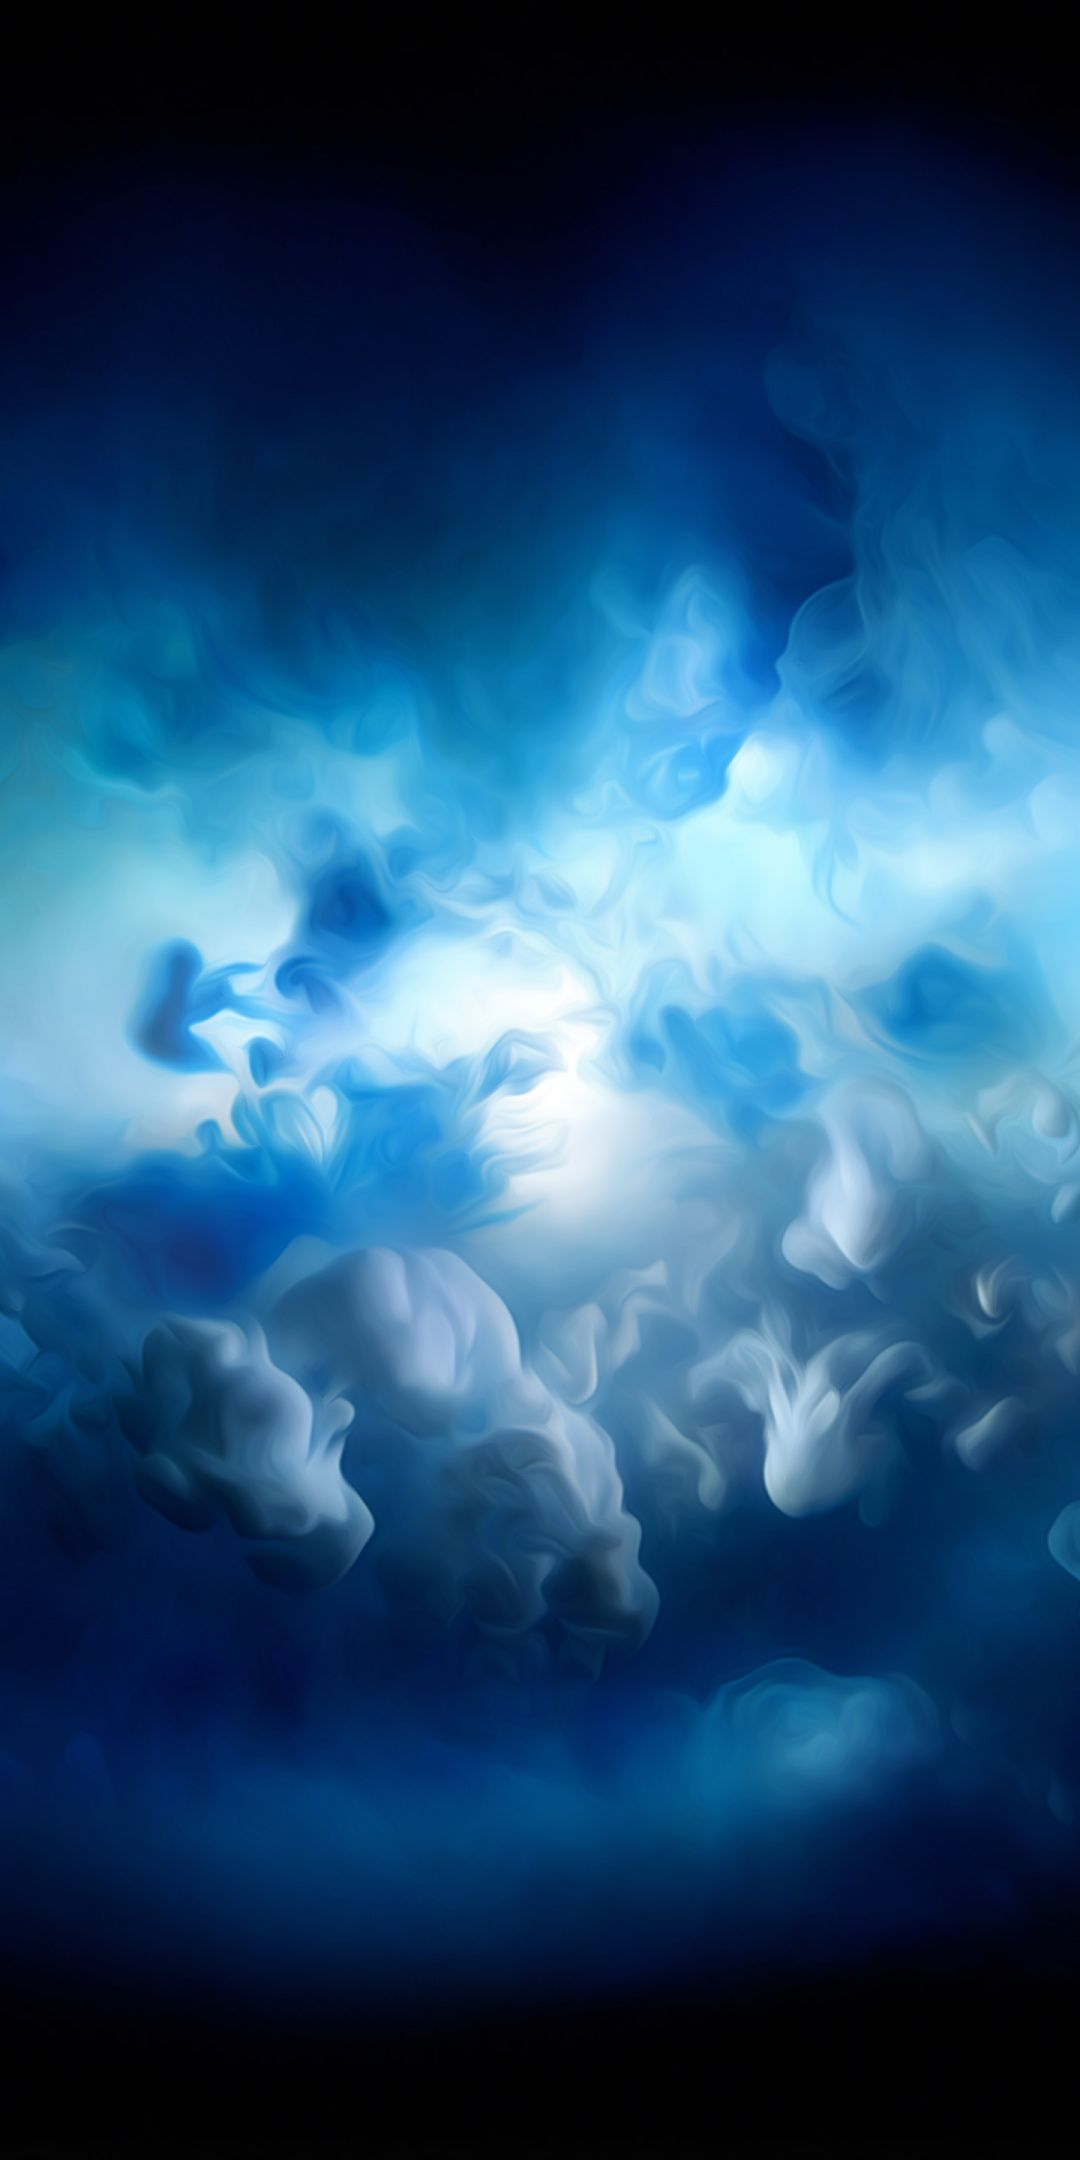 1080x2160 Blue Clouds Stock Wallpaper Stock Wallpaper Blue Clouds Clouds